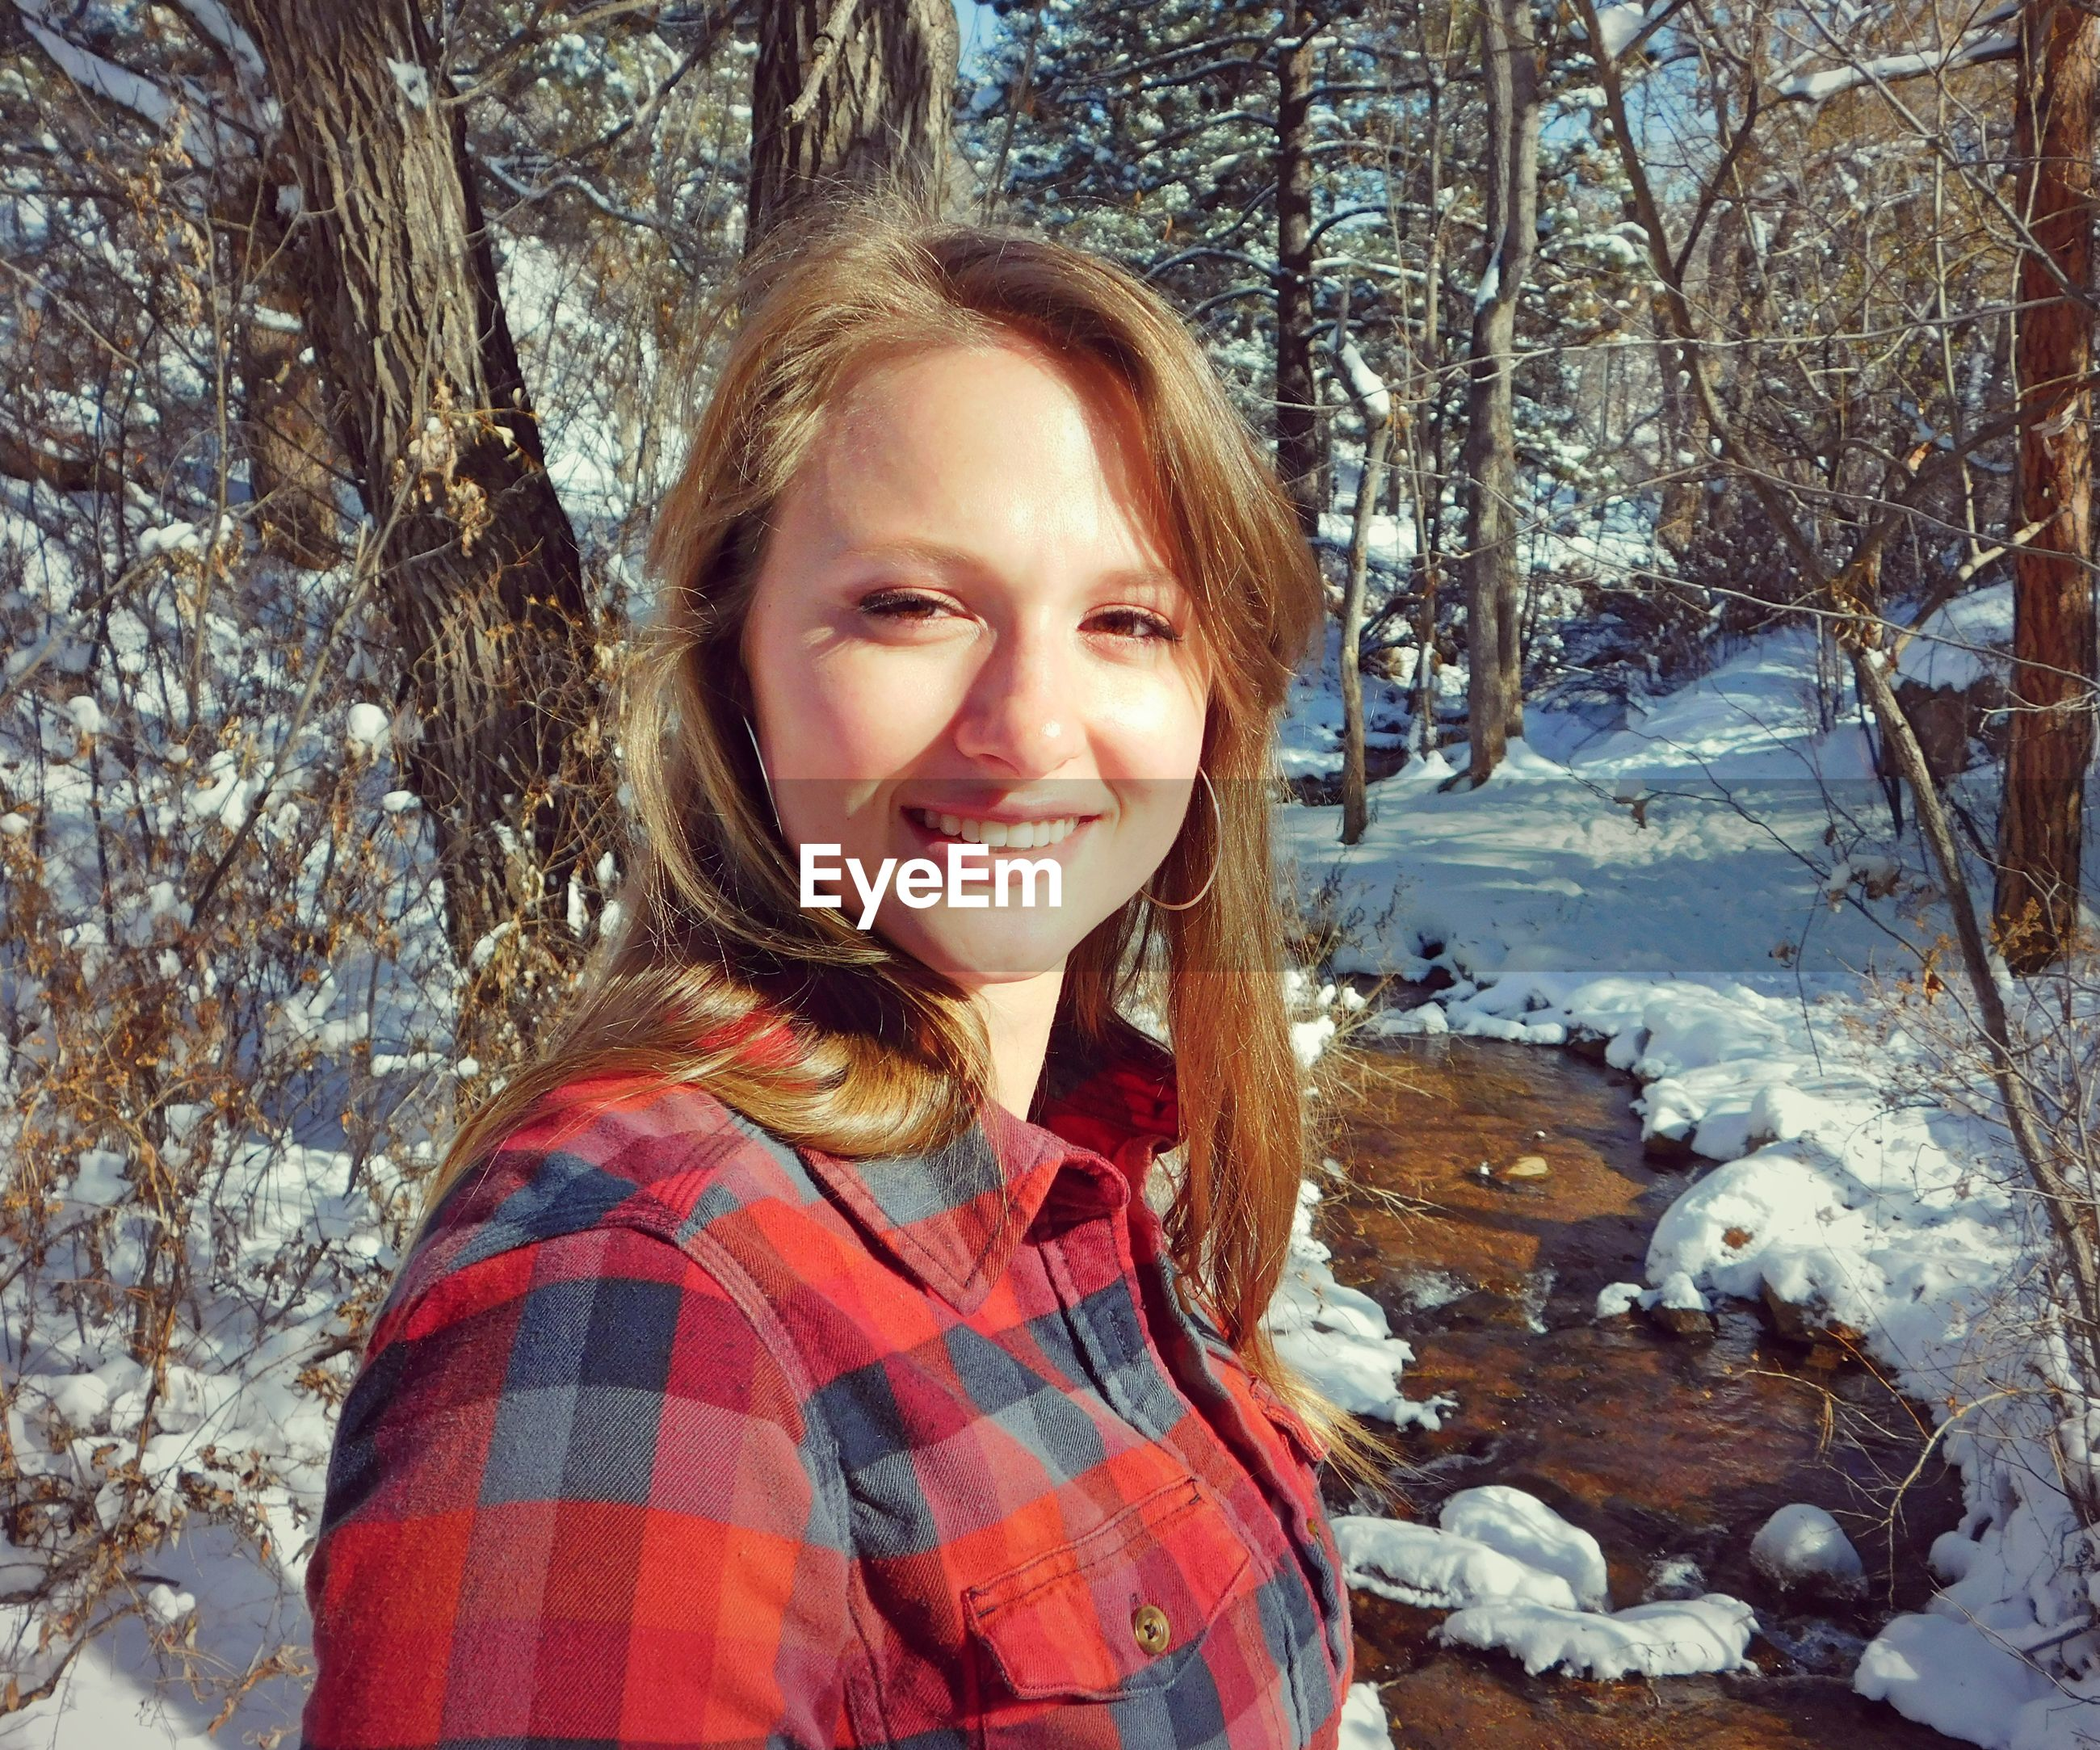 Portrait of smiling young woman in forest during winter